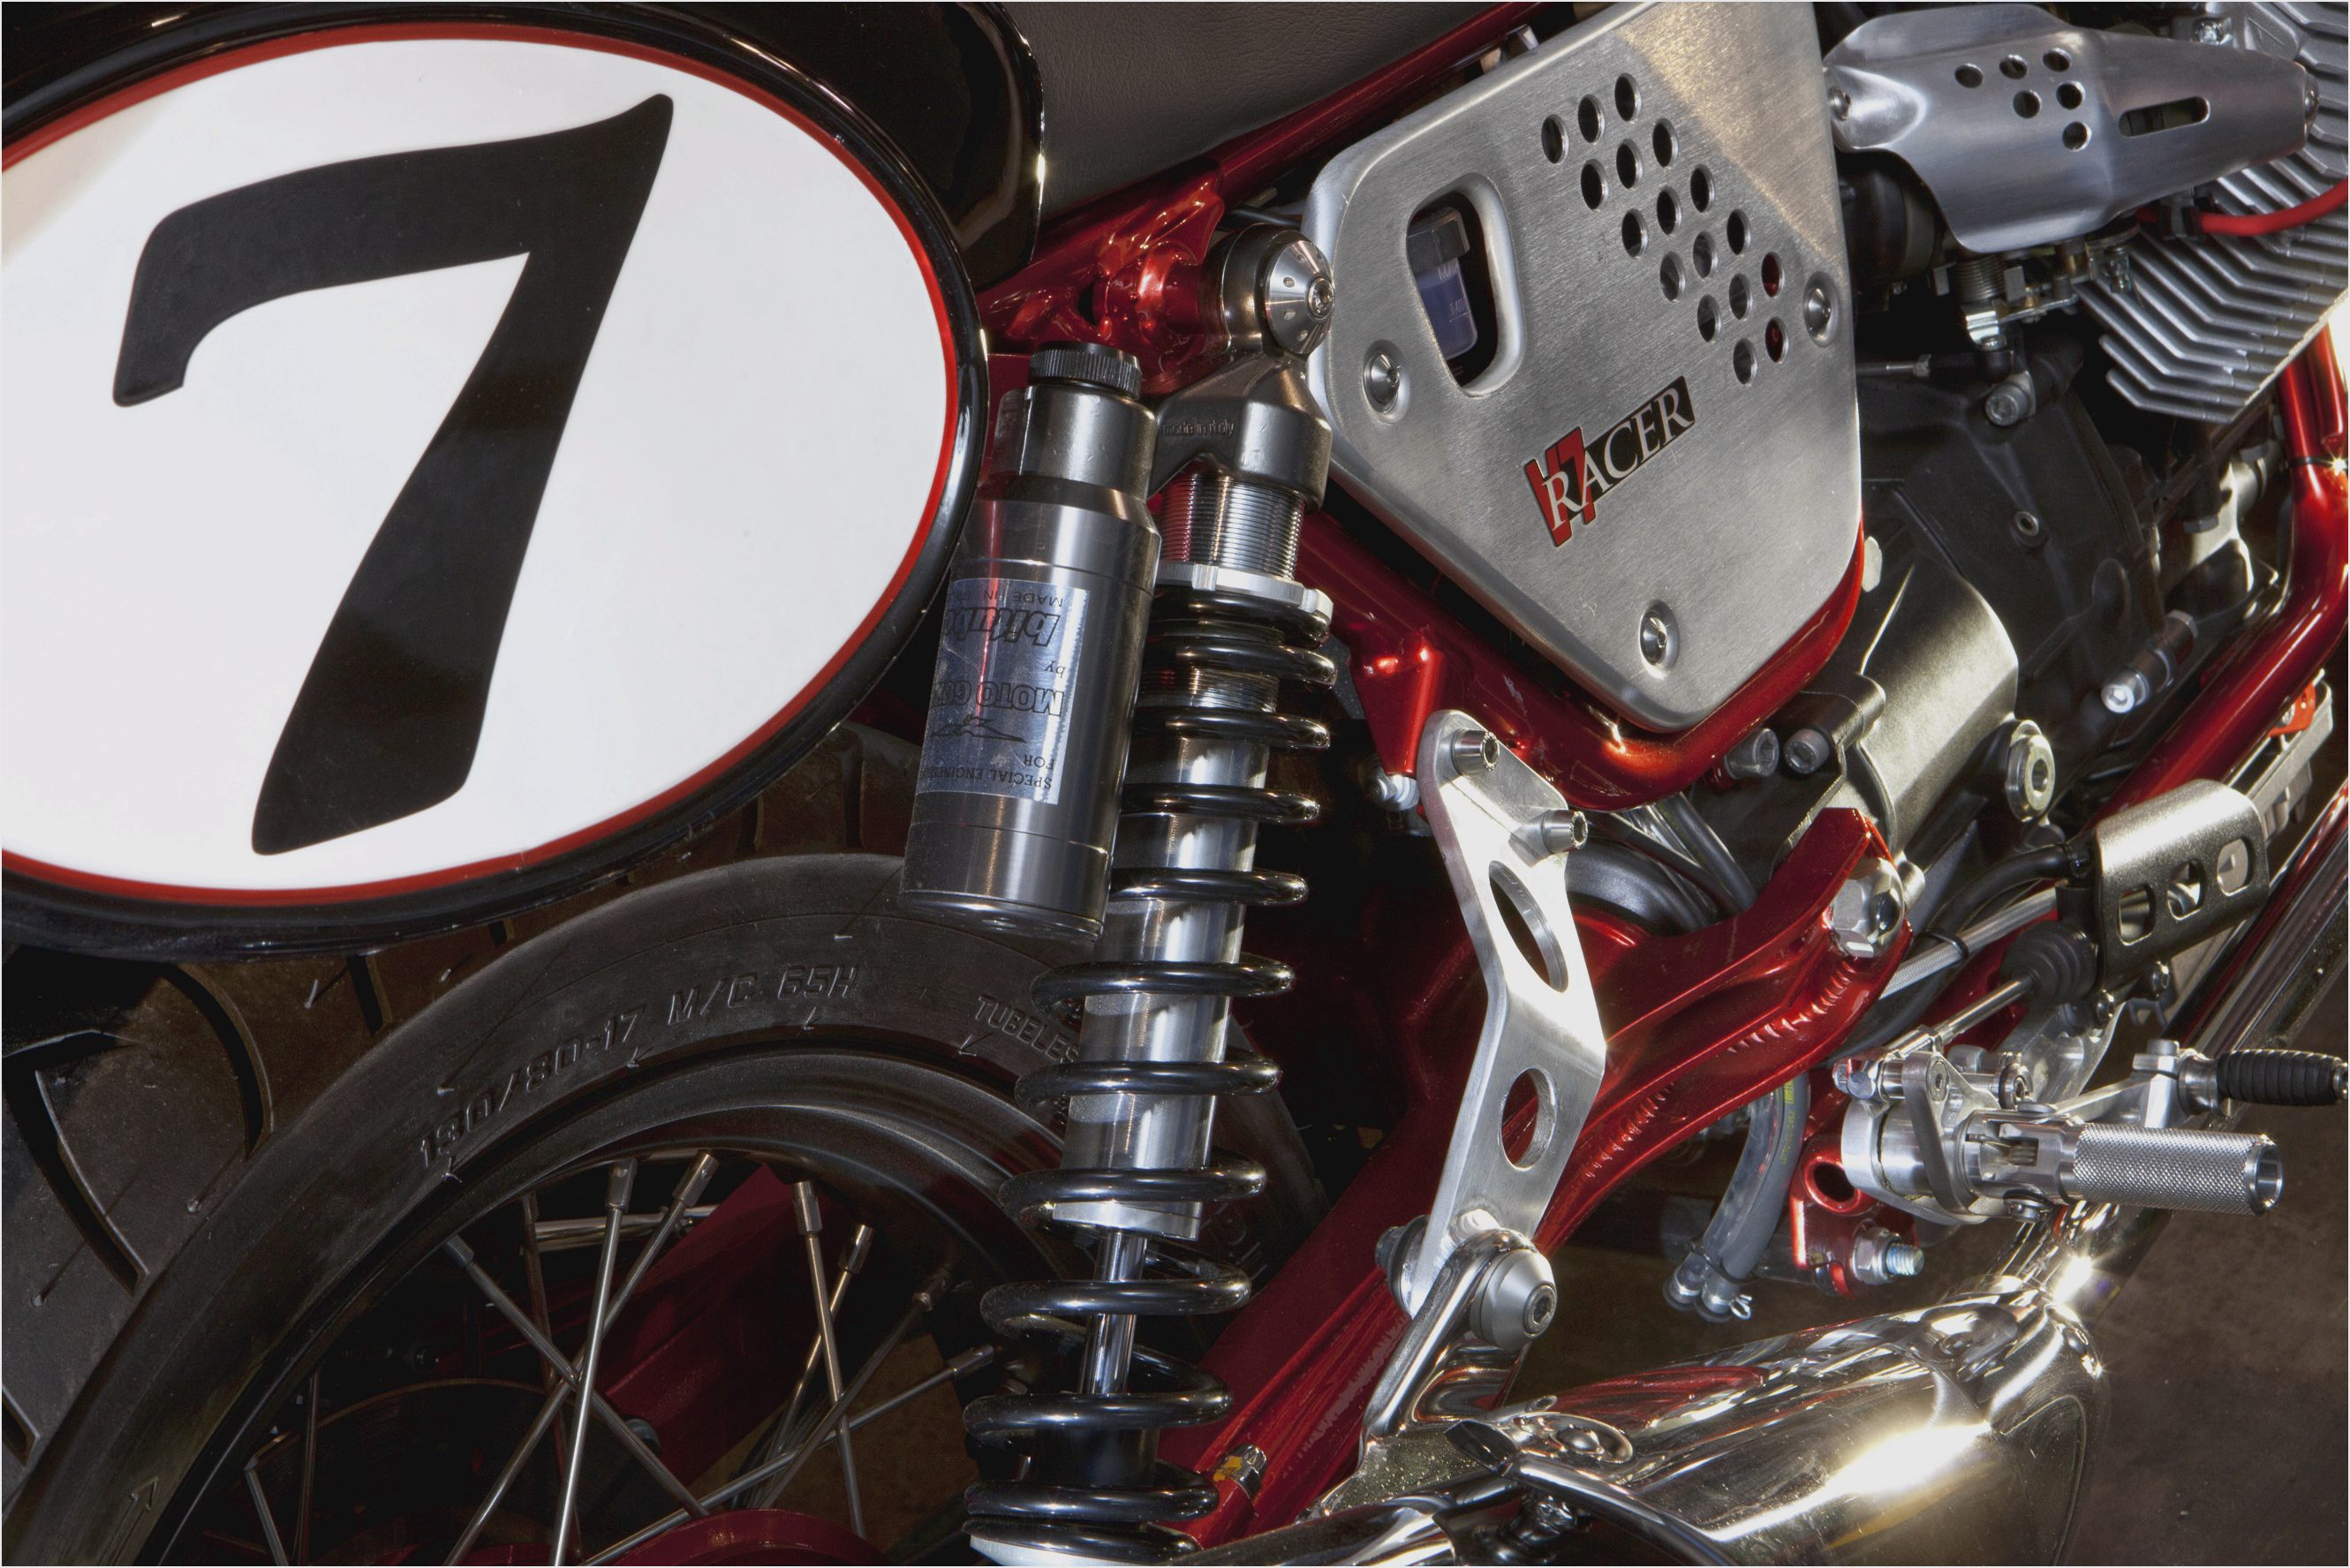 Moto Guzzi V7 Racer Limited Edition 2011 images #109585